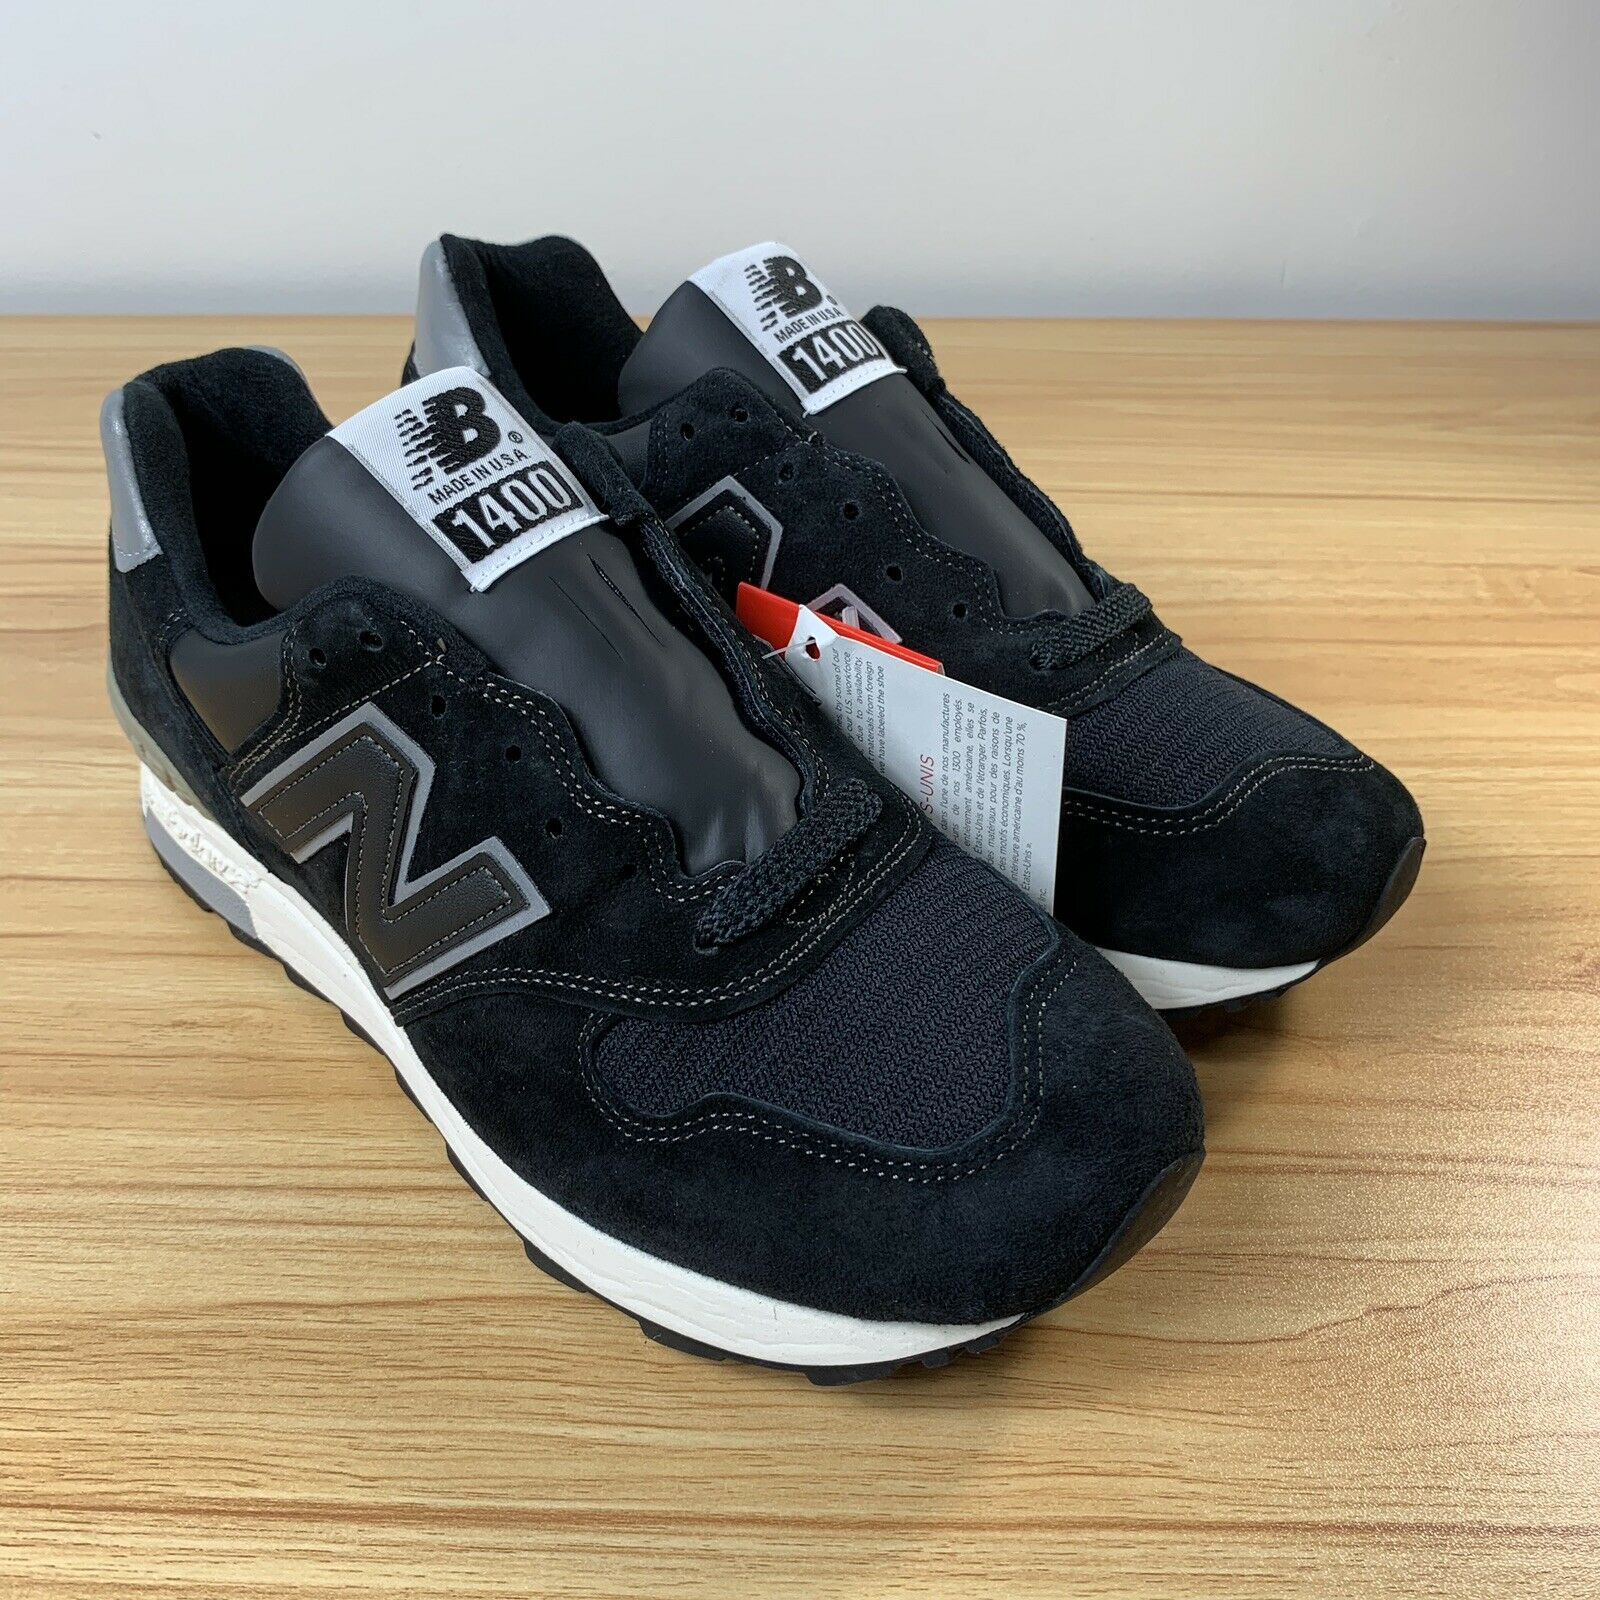 New Balance M1400BKS Size 7.5 Made in USA Japan Exclusive Black Silver Suede